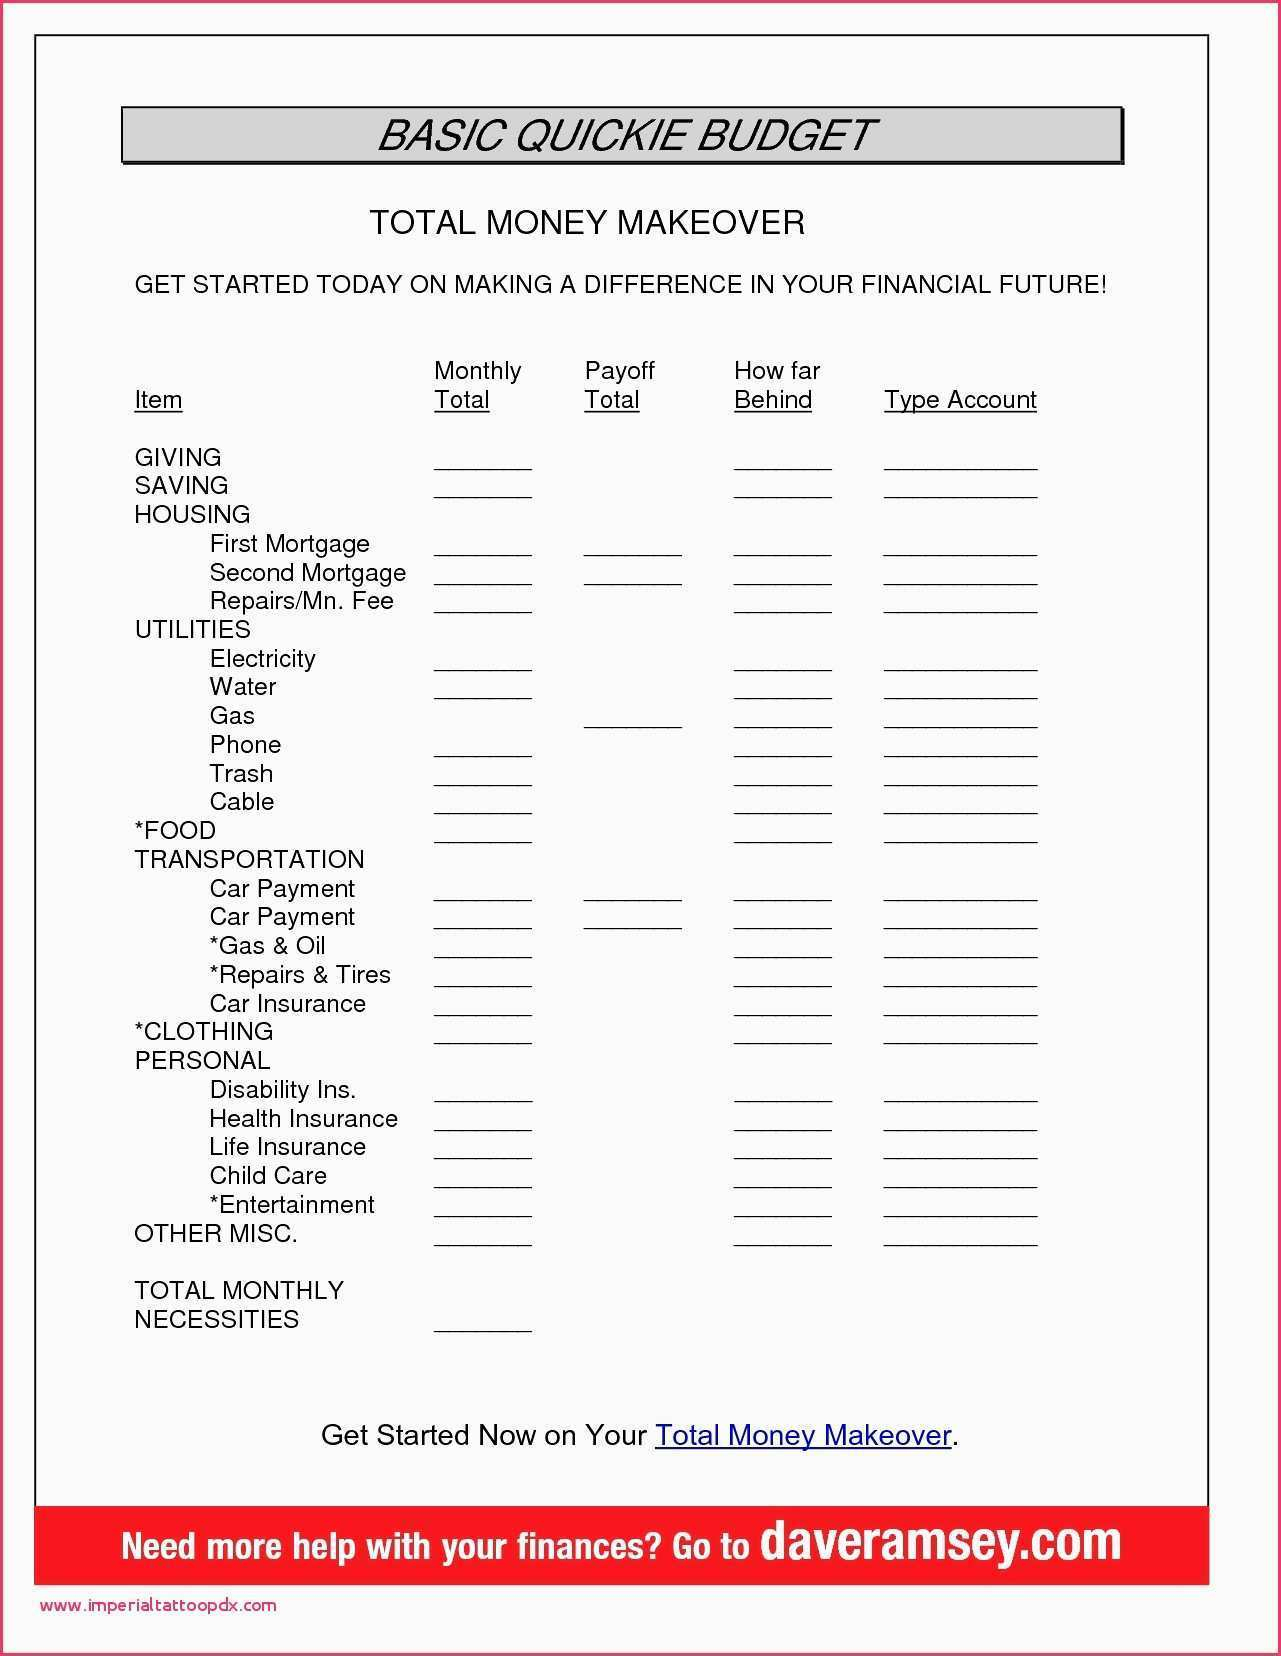 Auto Lease Calculator Excel Spreadsheet Within Auto Lease Calculator Spreadsheet Car Lease Spreadsheet Elegant Auto Lease Calculator Excel Spreadsheet Printable Spreadshee Printable Spreadshee auto lease calculator excel spreadsheet